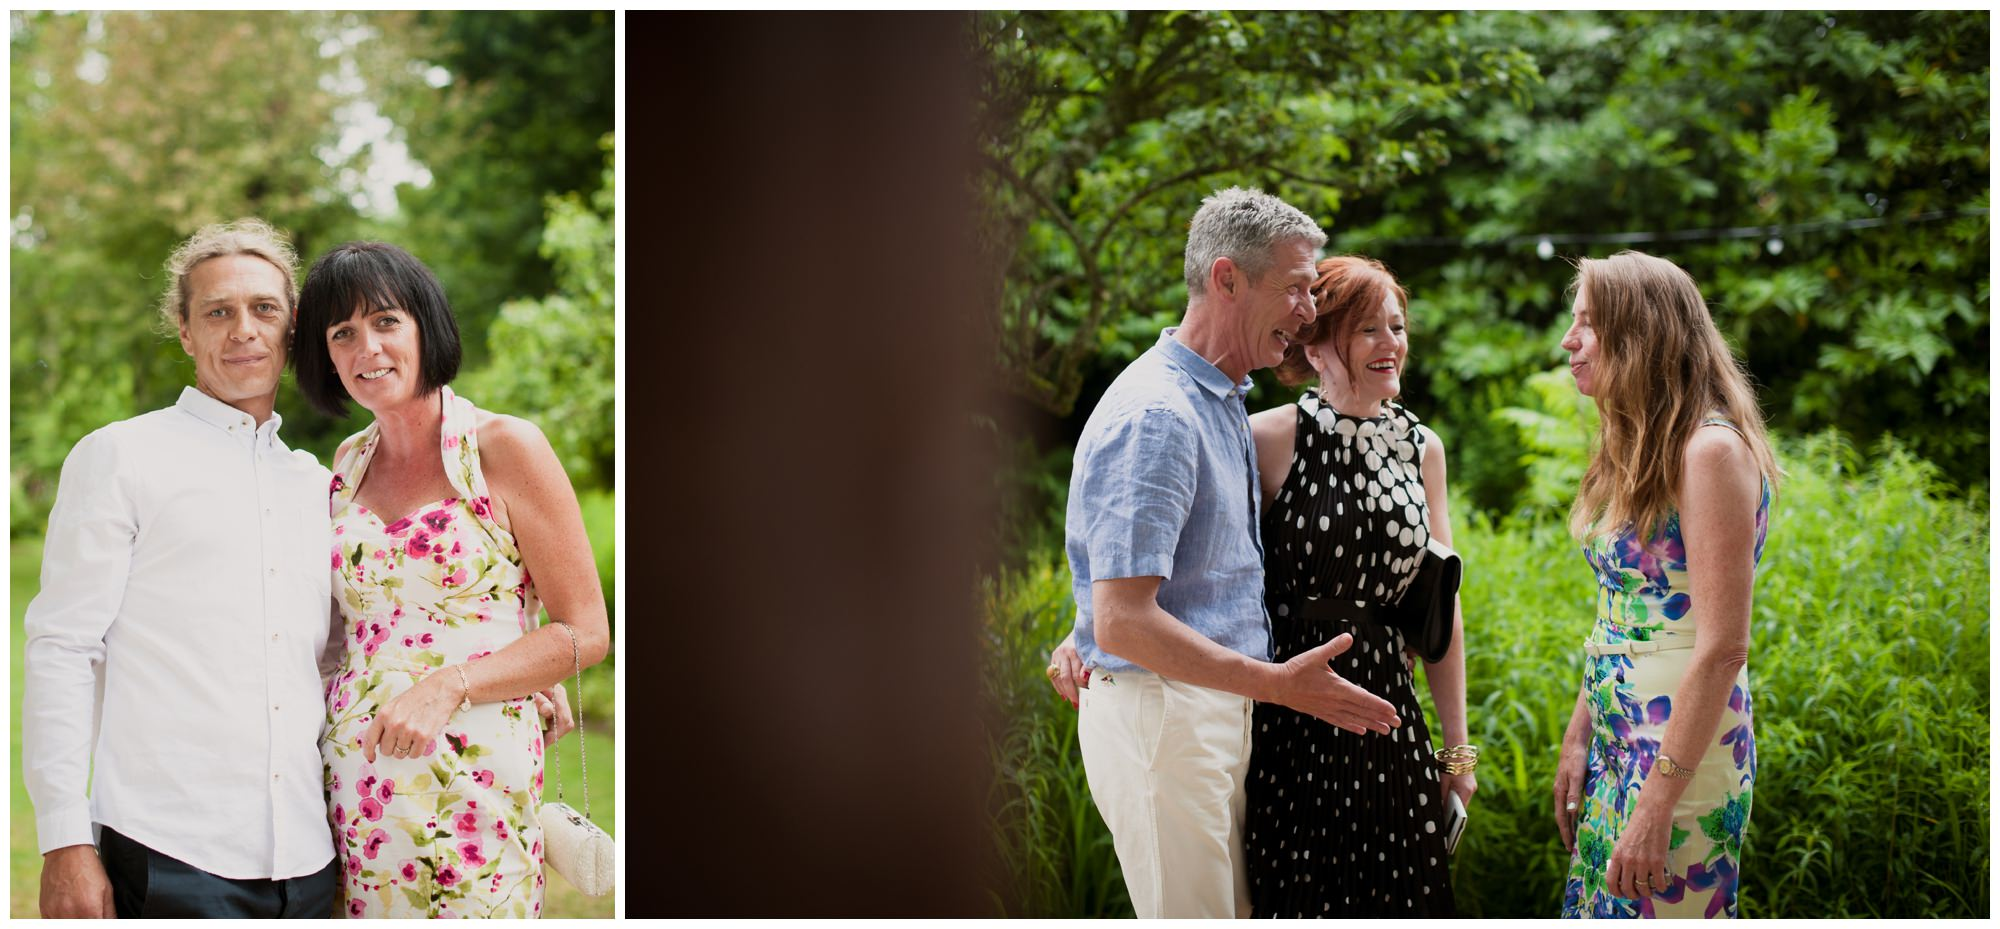 Photography of dorset wedding guests